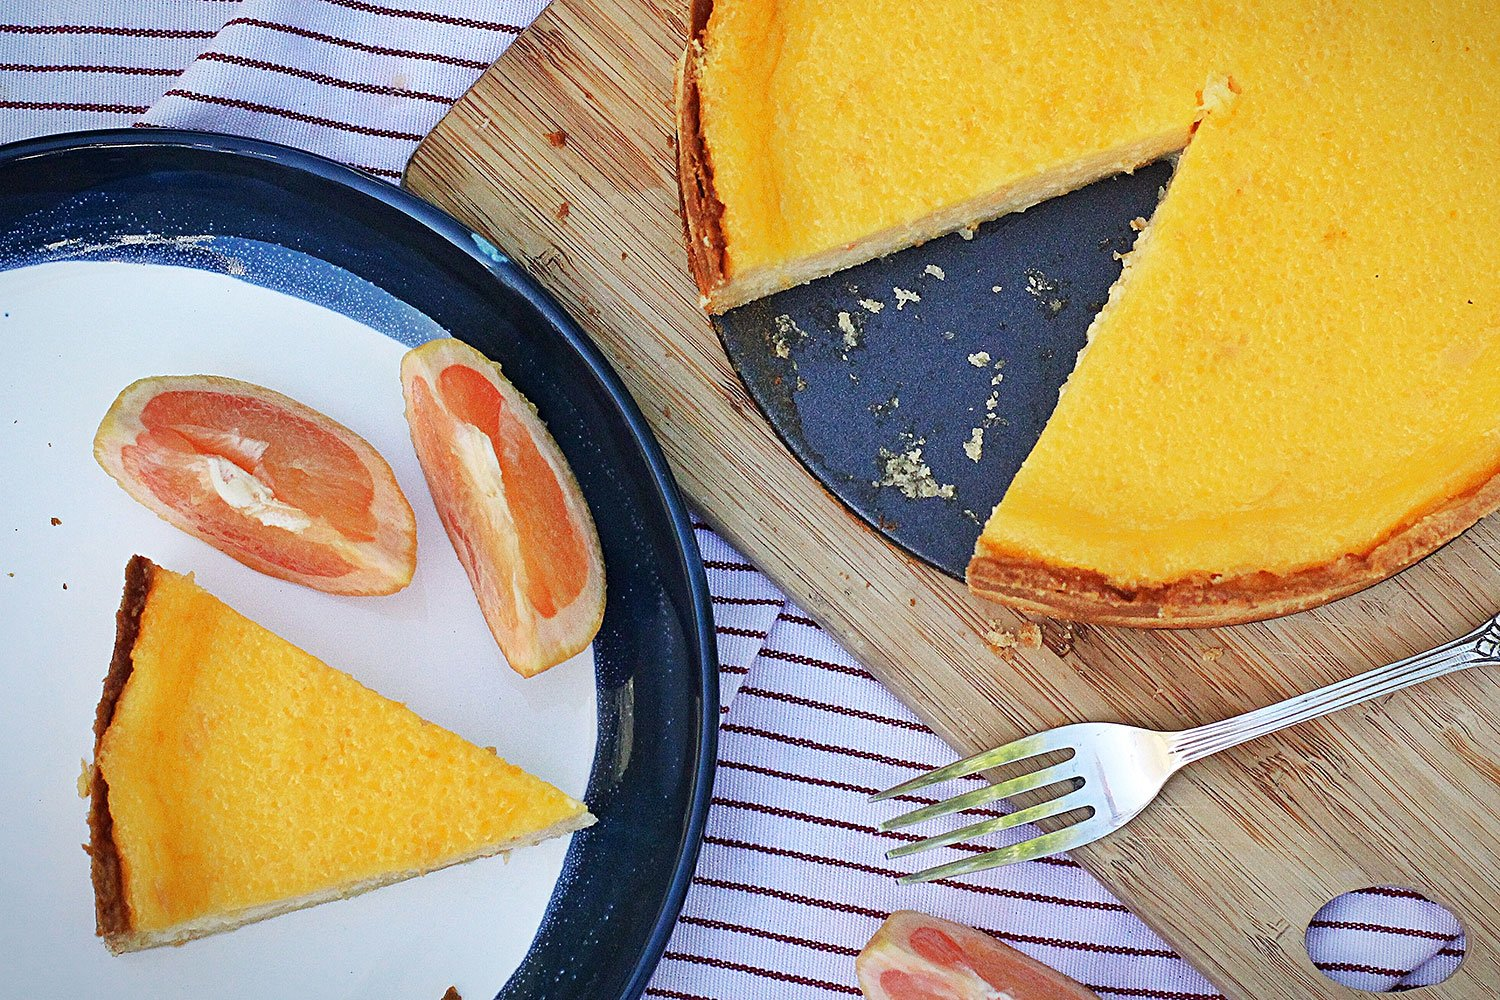 Aerial shot of grapefruit tart with a slice cut out on a plate